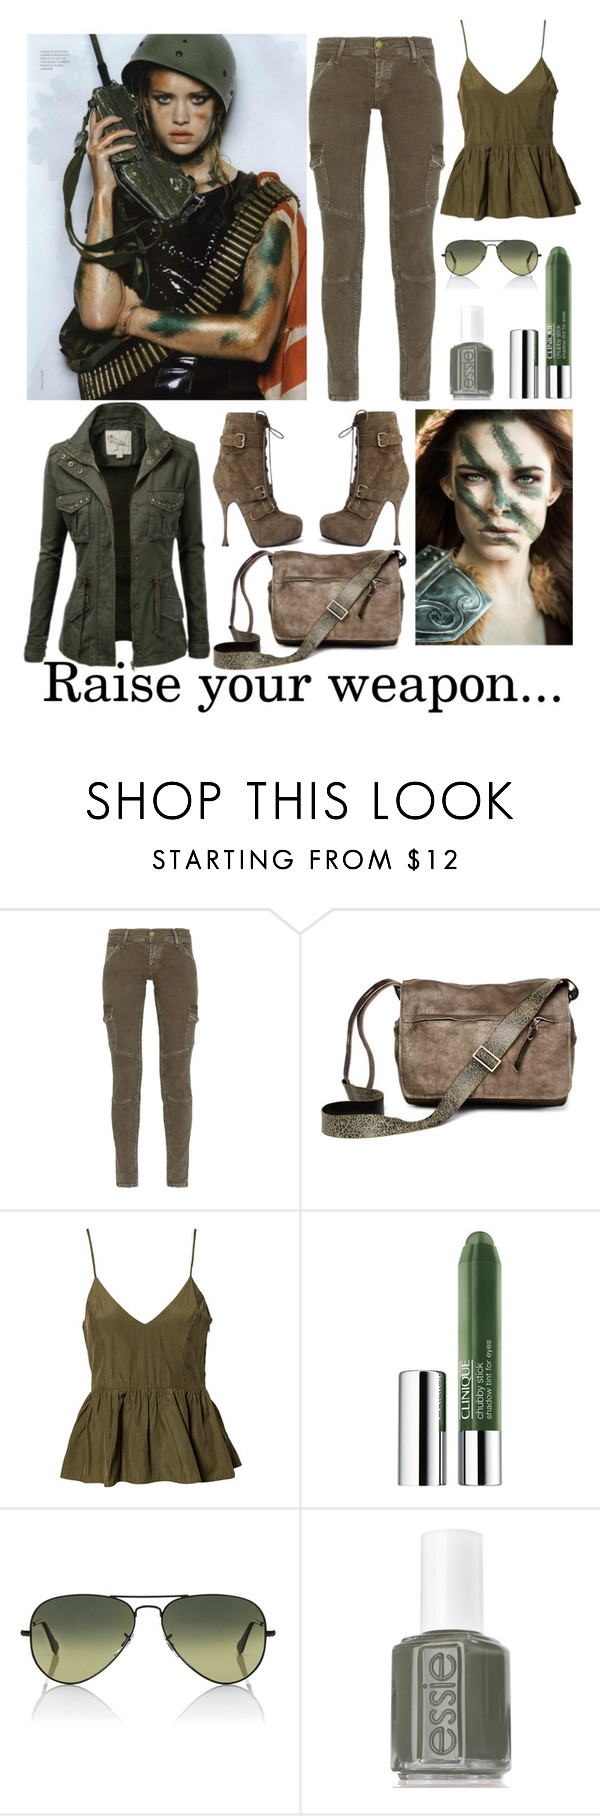 """Raise your weapon"" by cinnamon-swirl-1 ❤ liked on Polyvore featuring Current/Elliott, Ina Kent, NLY Trend, Clinique, Ray-Ban and Essie"